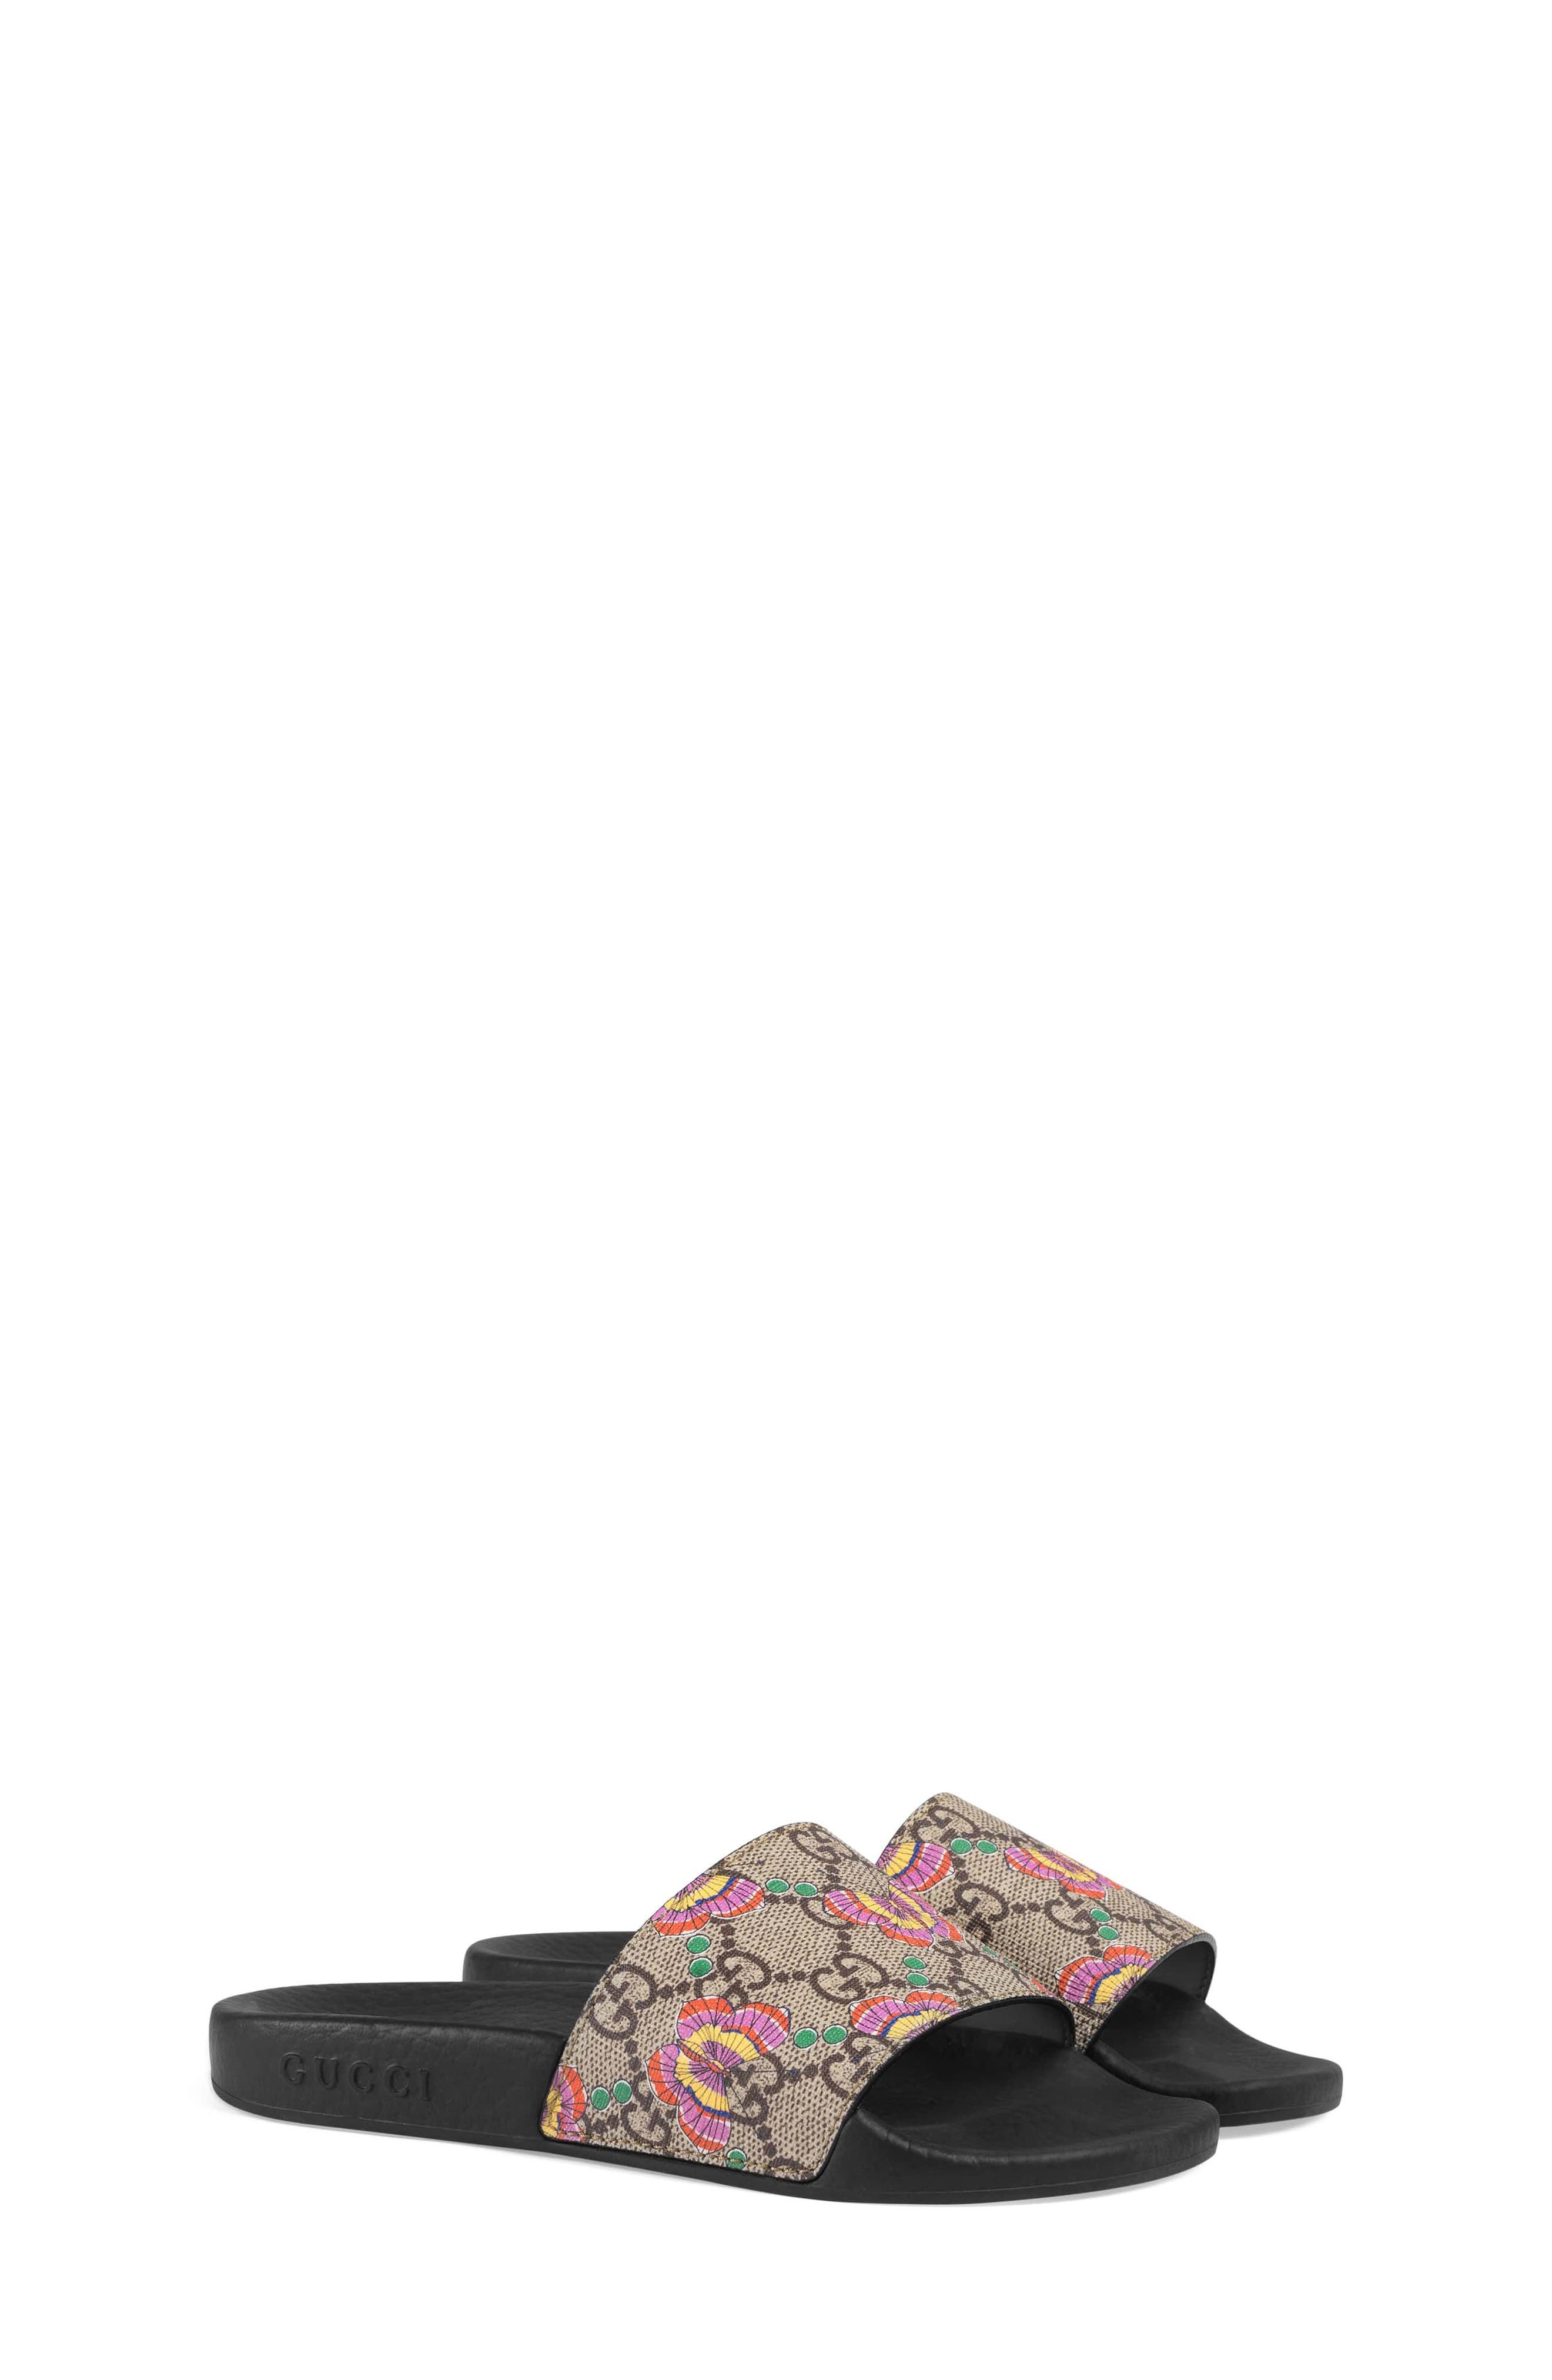 GG Supreme Butterfly Slide Sandal,                             Main thumbnail 1, color,                             Beige/ Pink Multi